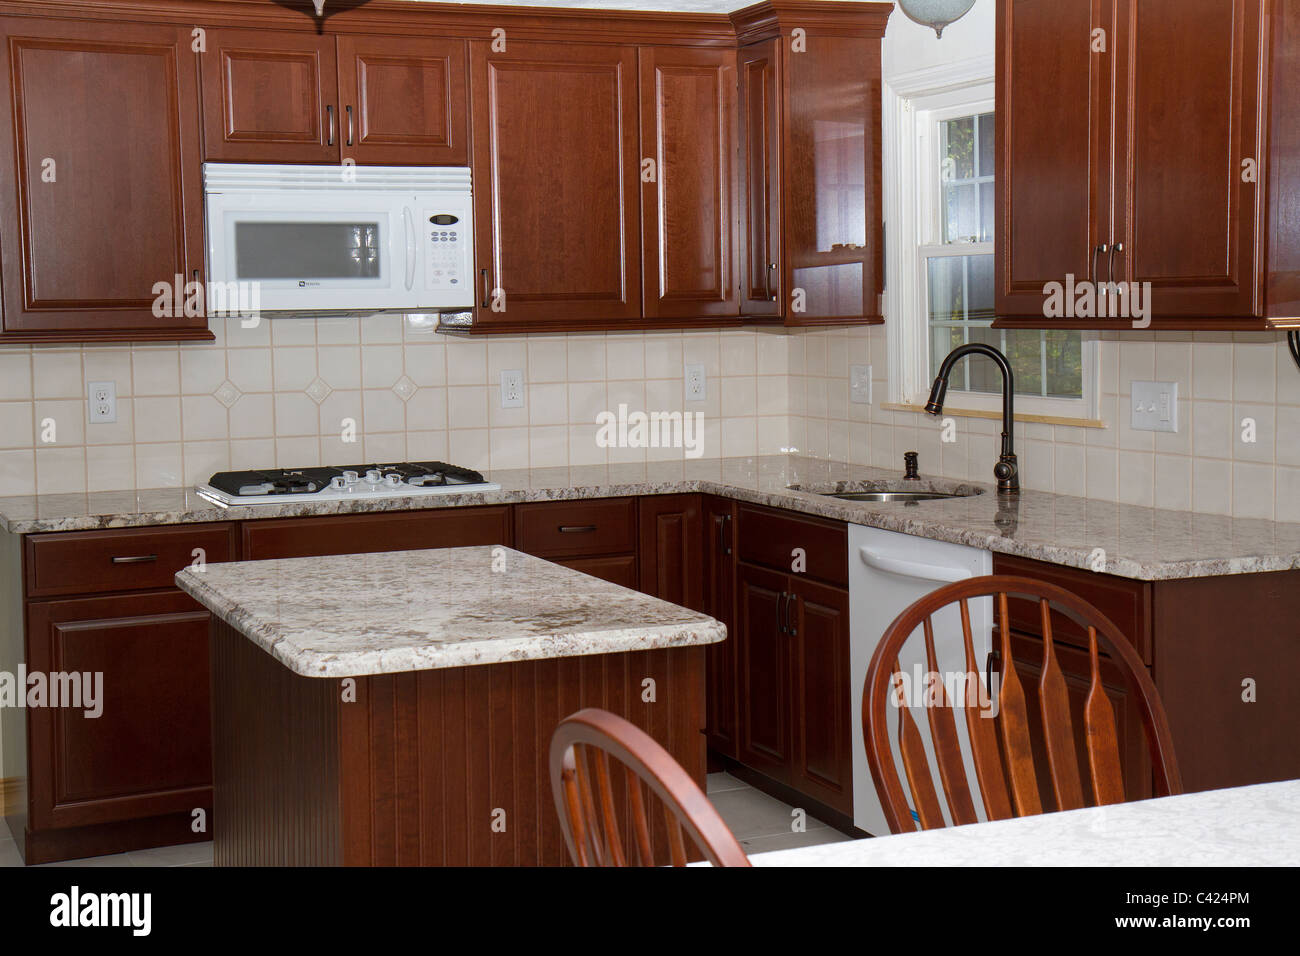 New Cherry Cabinets, Granite Counter Tops, And Ceramic Tile Floor Highlight  Kitchen Remodeling Job